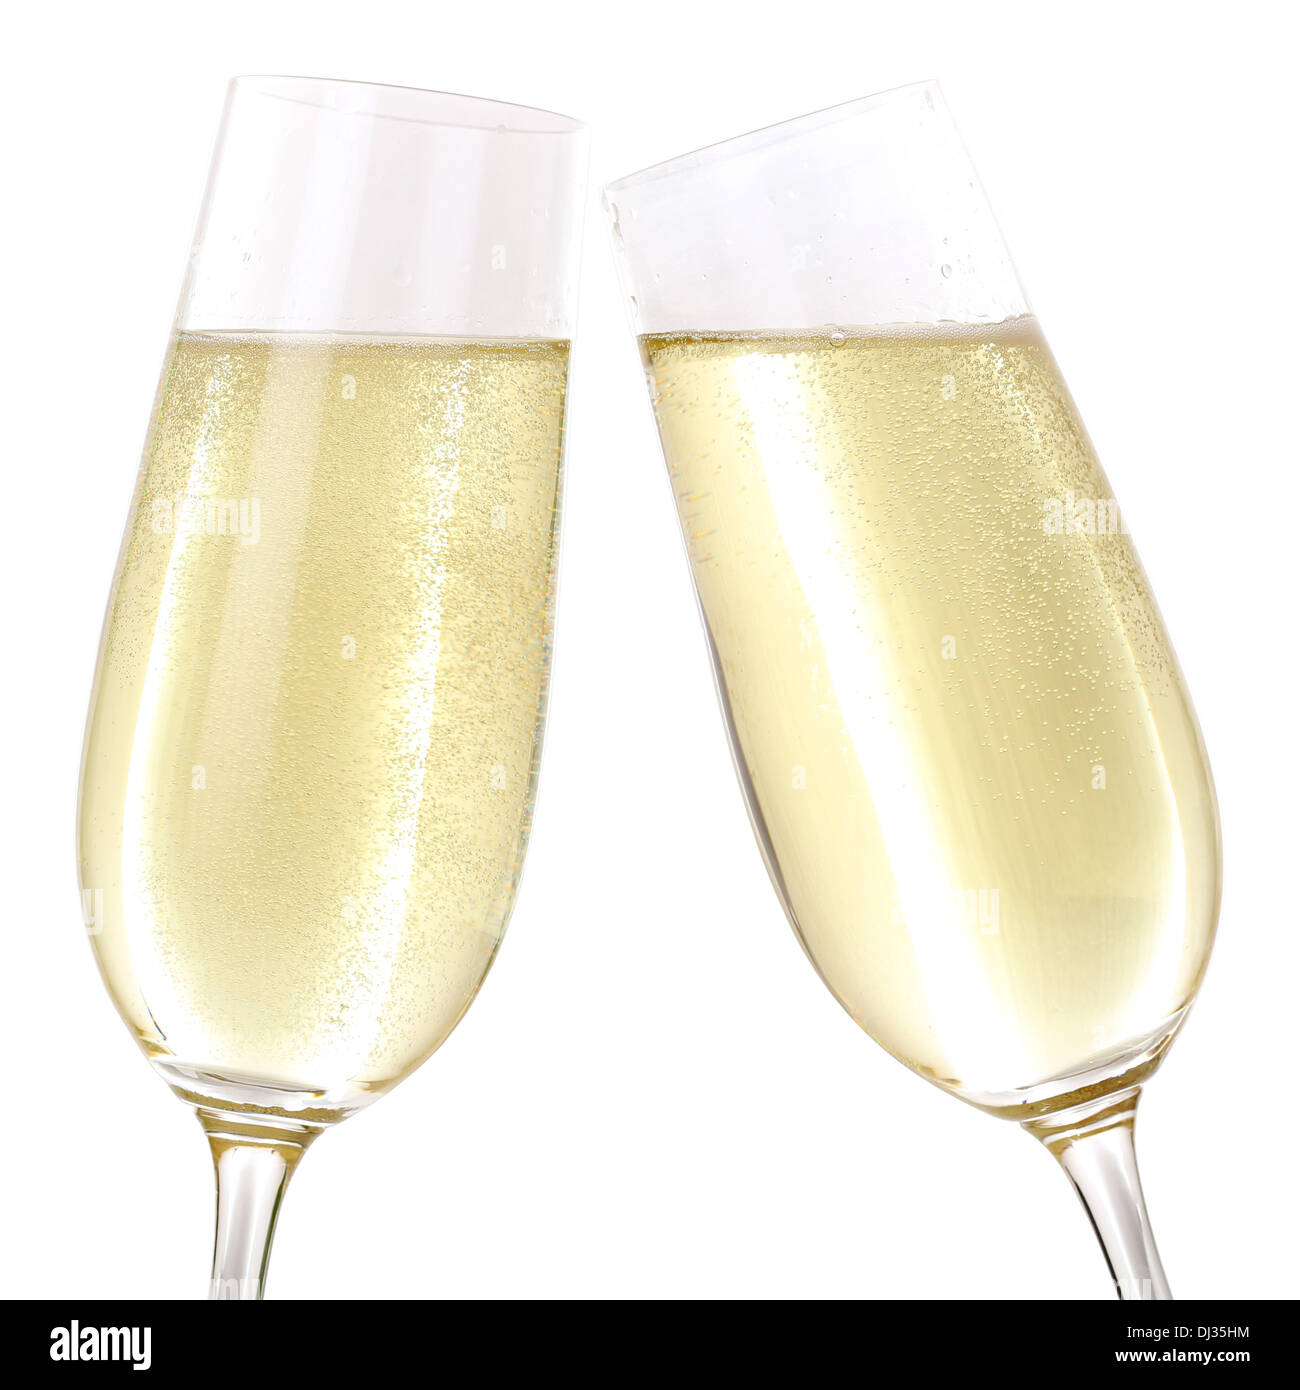 Clink glasses with two glasses filled with sparkling Champagne - Stock Image